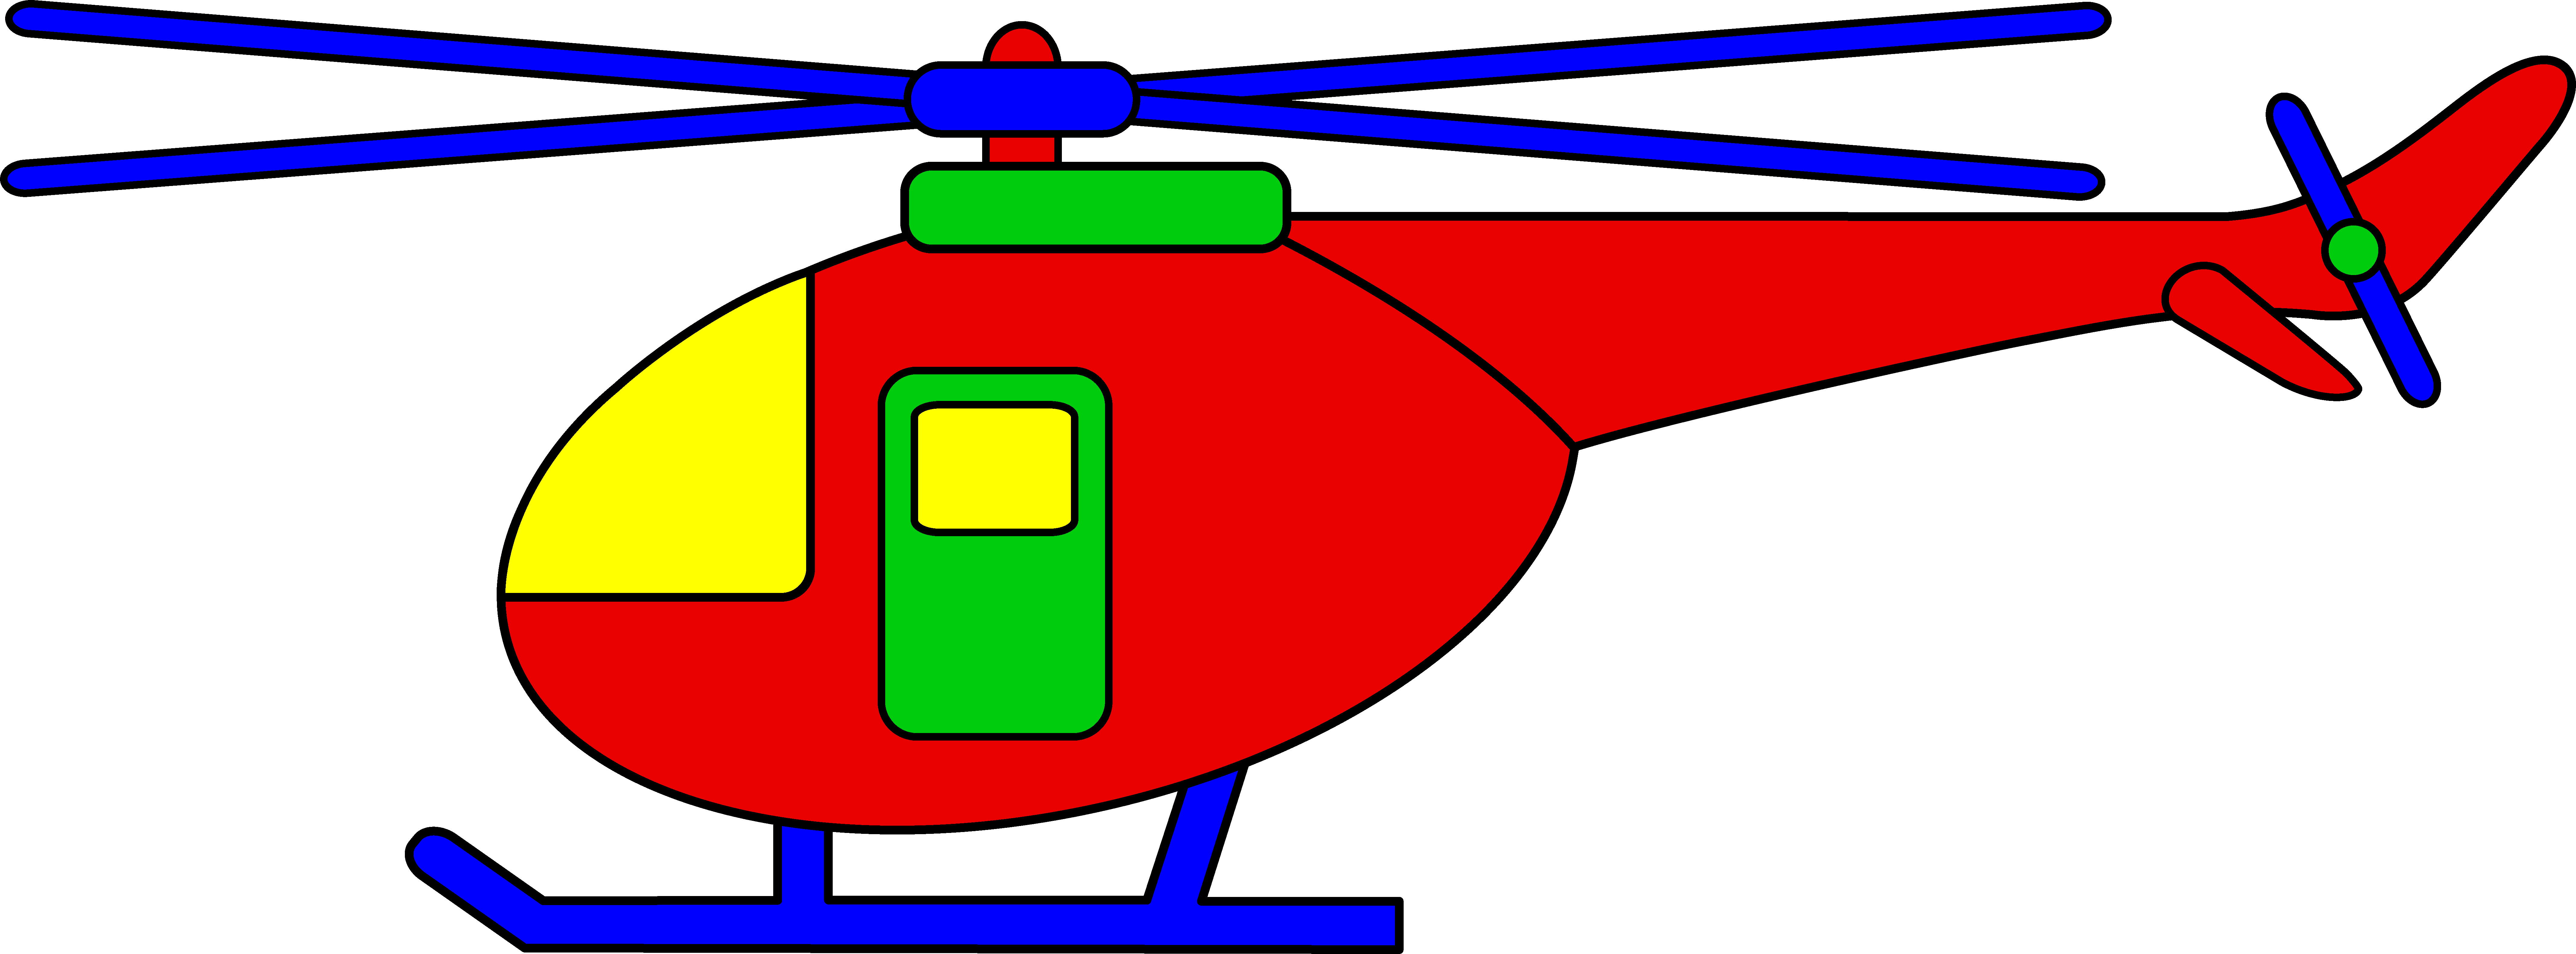 vector royalty free Helicopter clipart. Panda free images